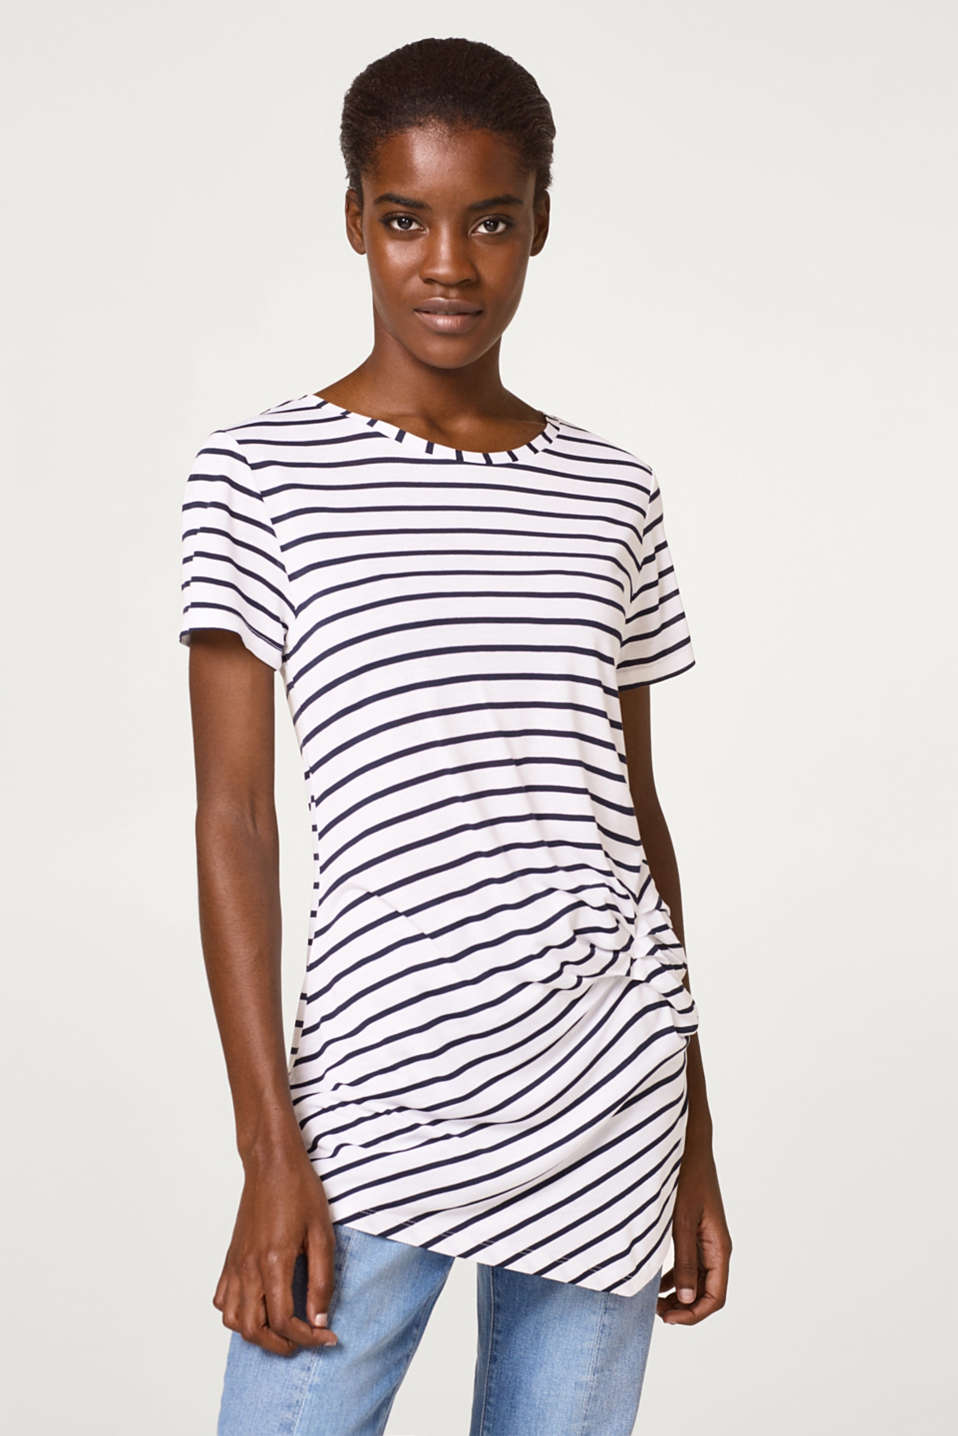 Esprit - Lightweight, striped T-shirt with pleats